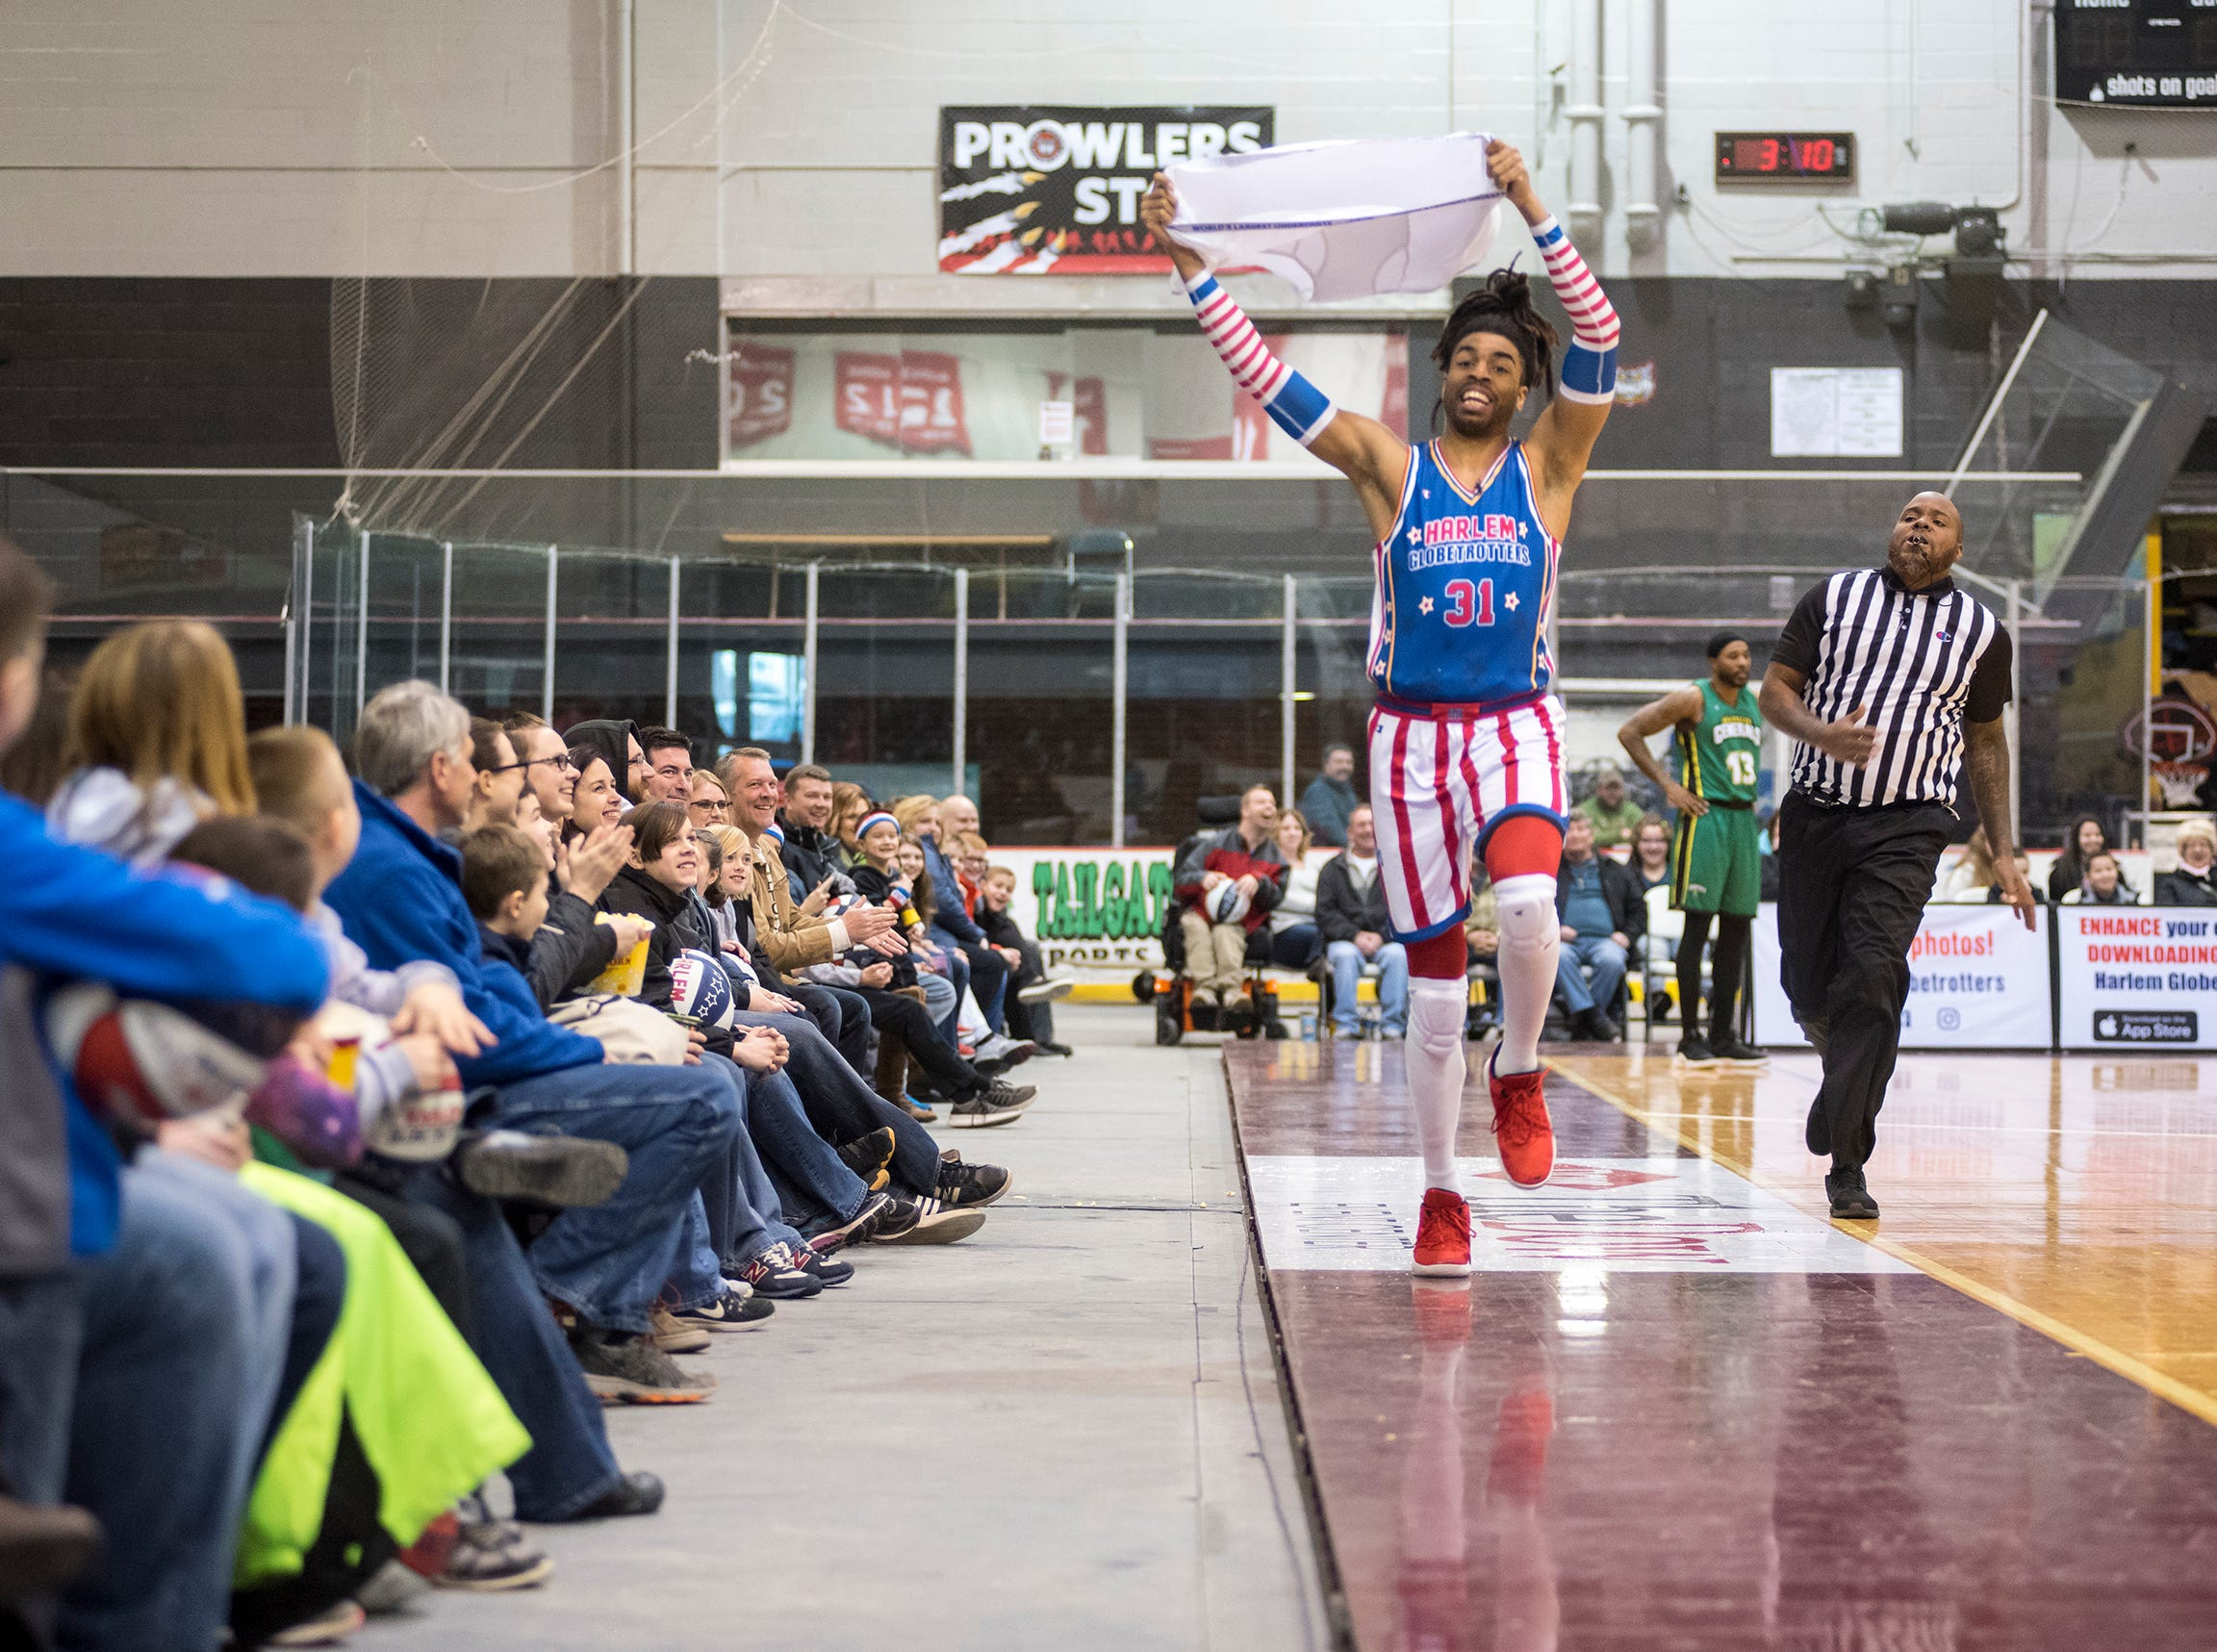 Hammer The Harlem Globetrotters entertain a crowd while they take on the Washington Generals Saturday, Feb. 2, 2019 at McMorran Arena in Port Huron.